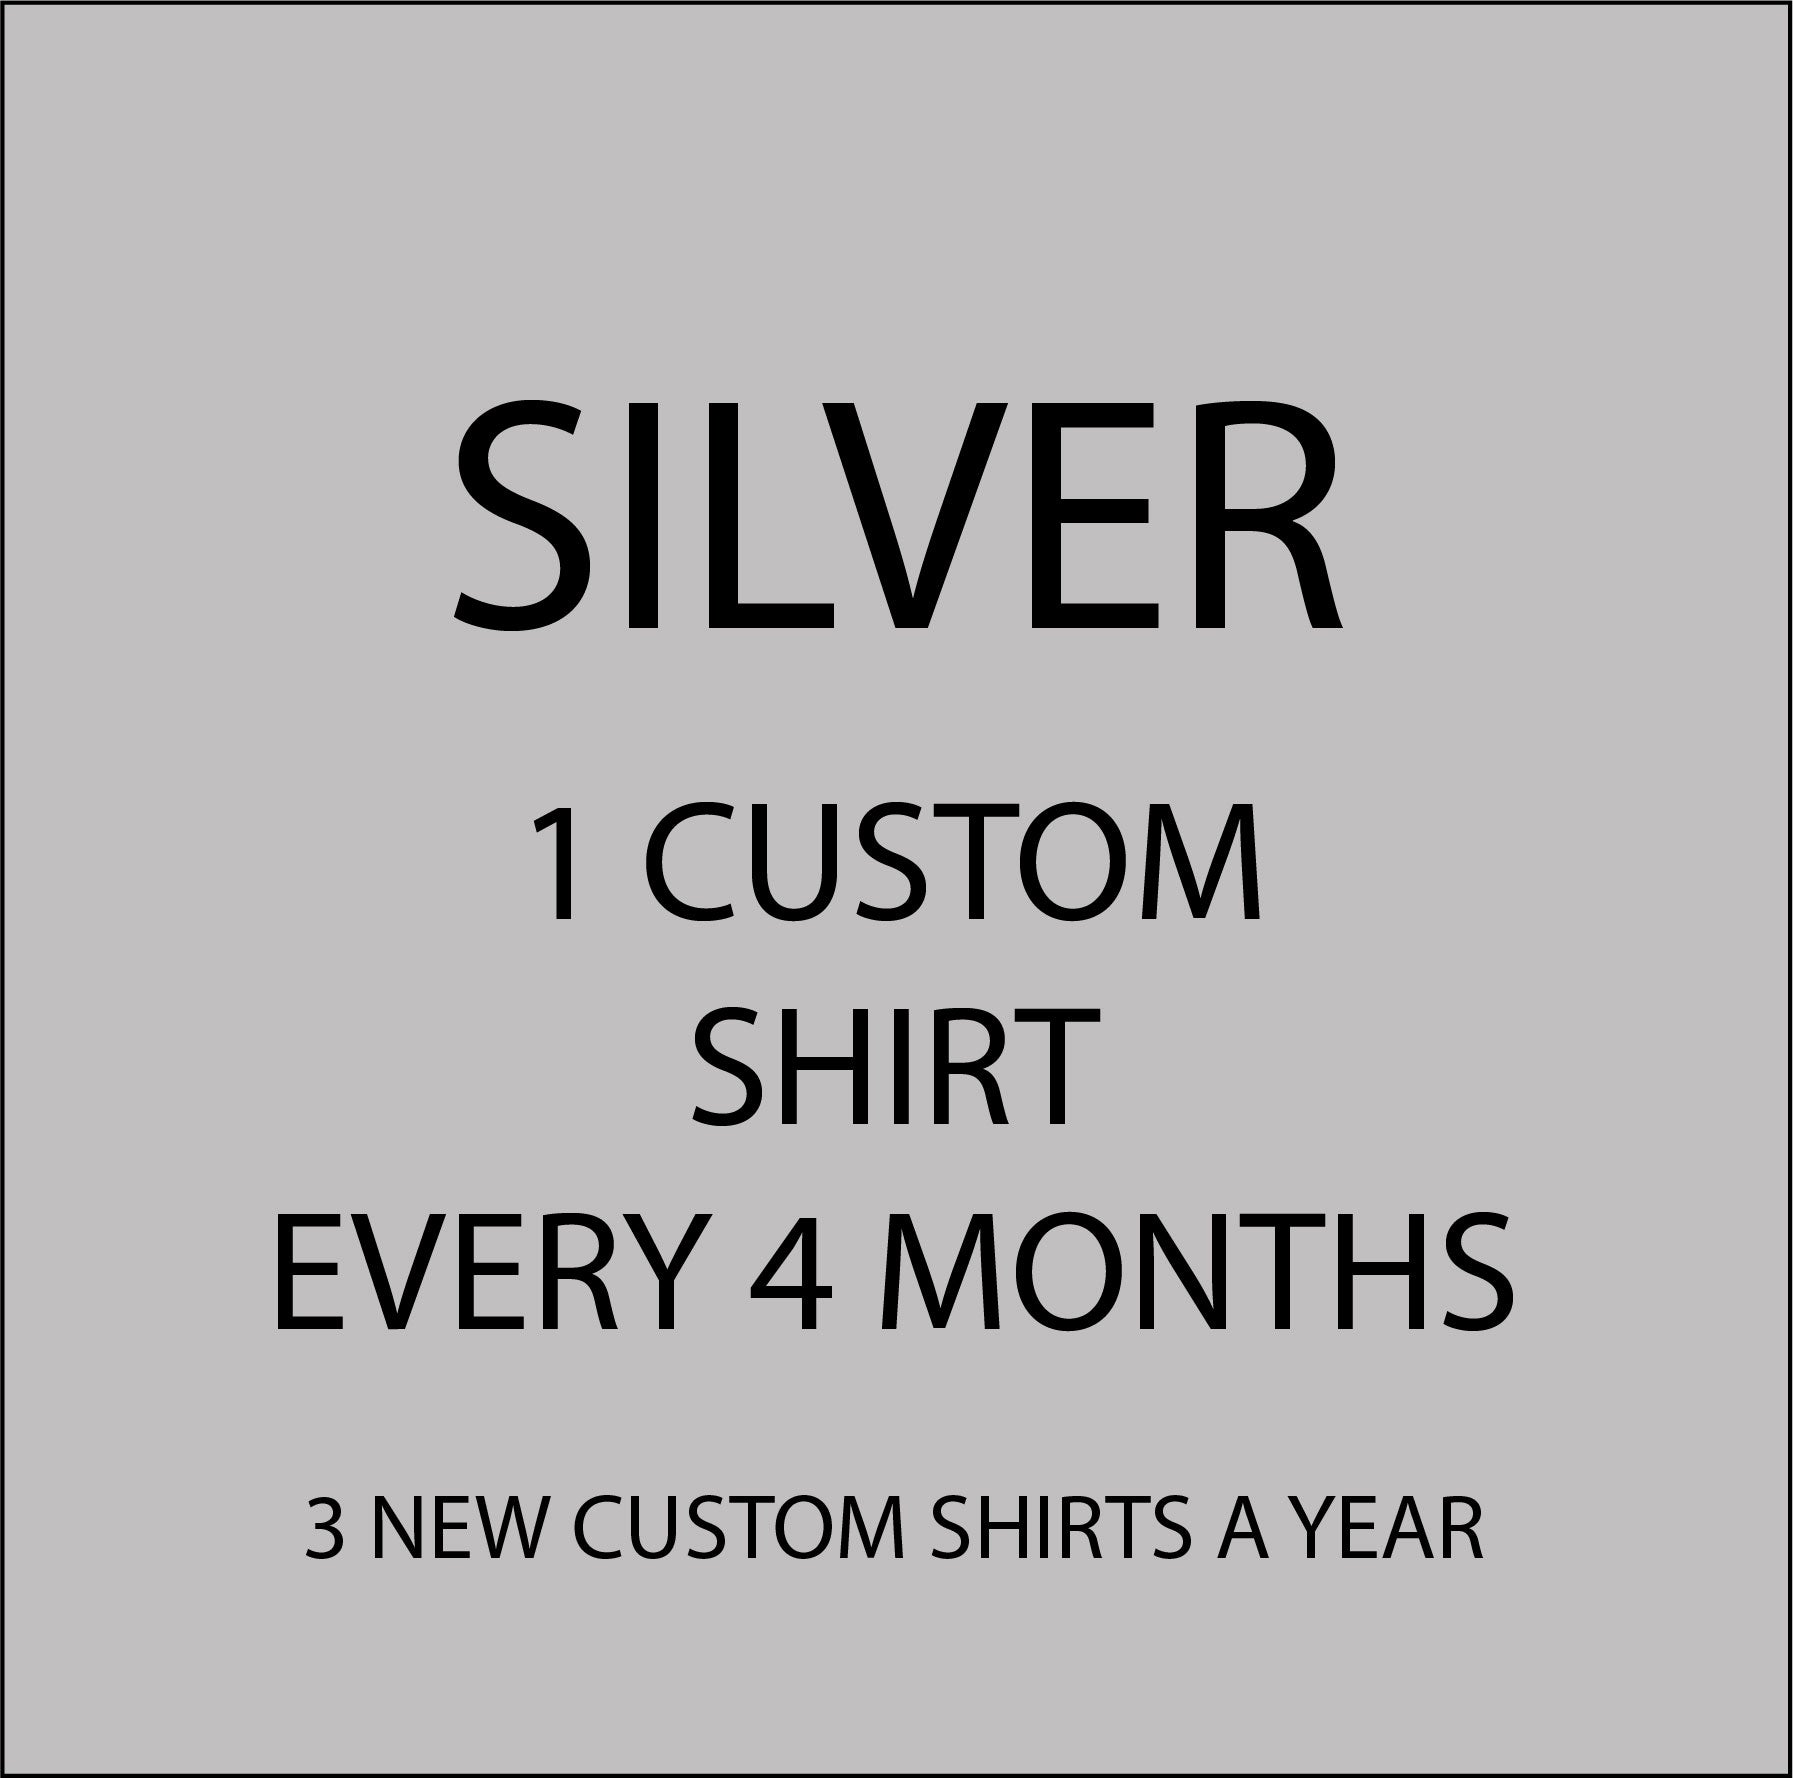 Silver - 1 Custom Shirt Every 4 Month